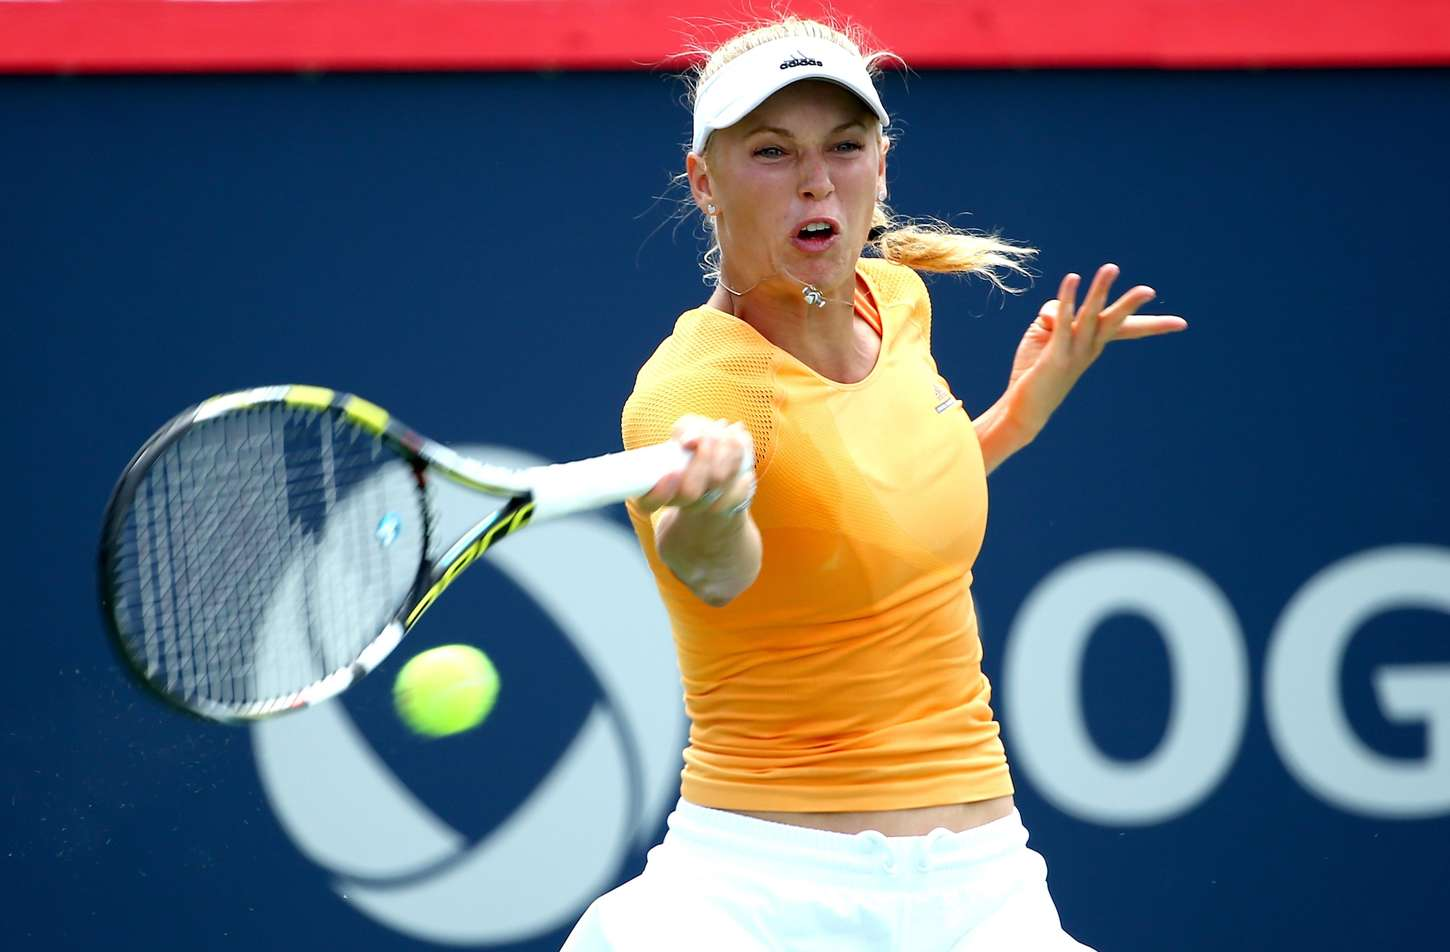 Caroline Wozniacki at Rogers Cup in Montreal